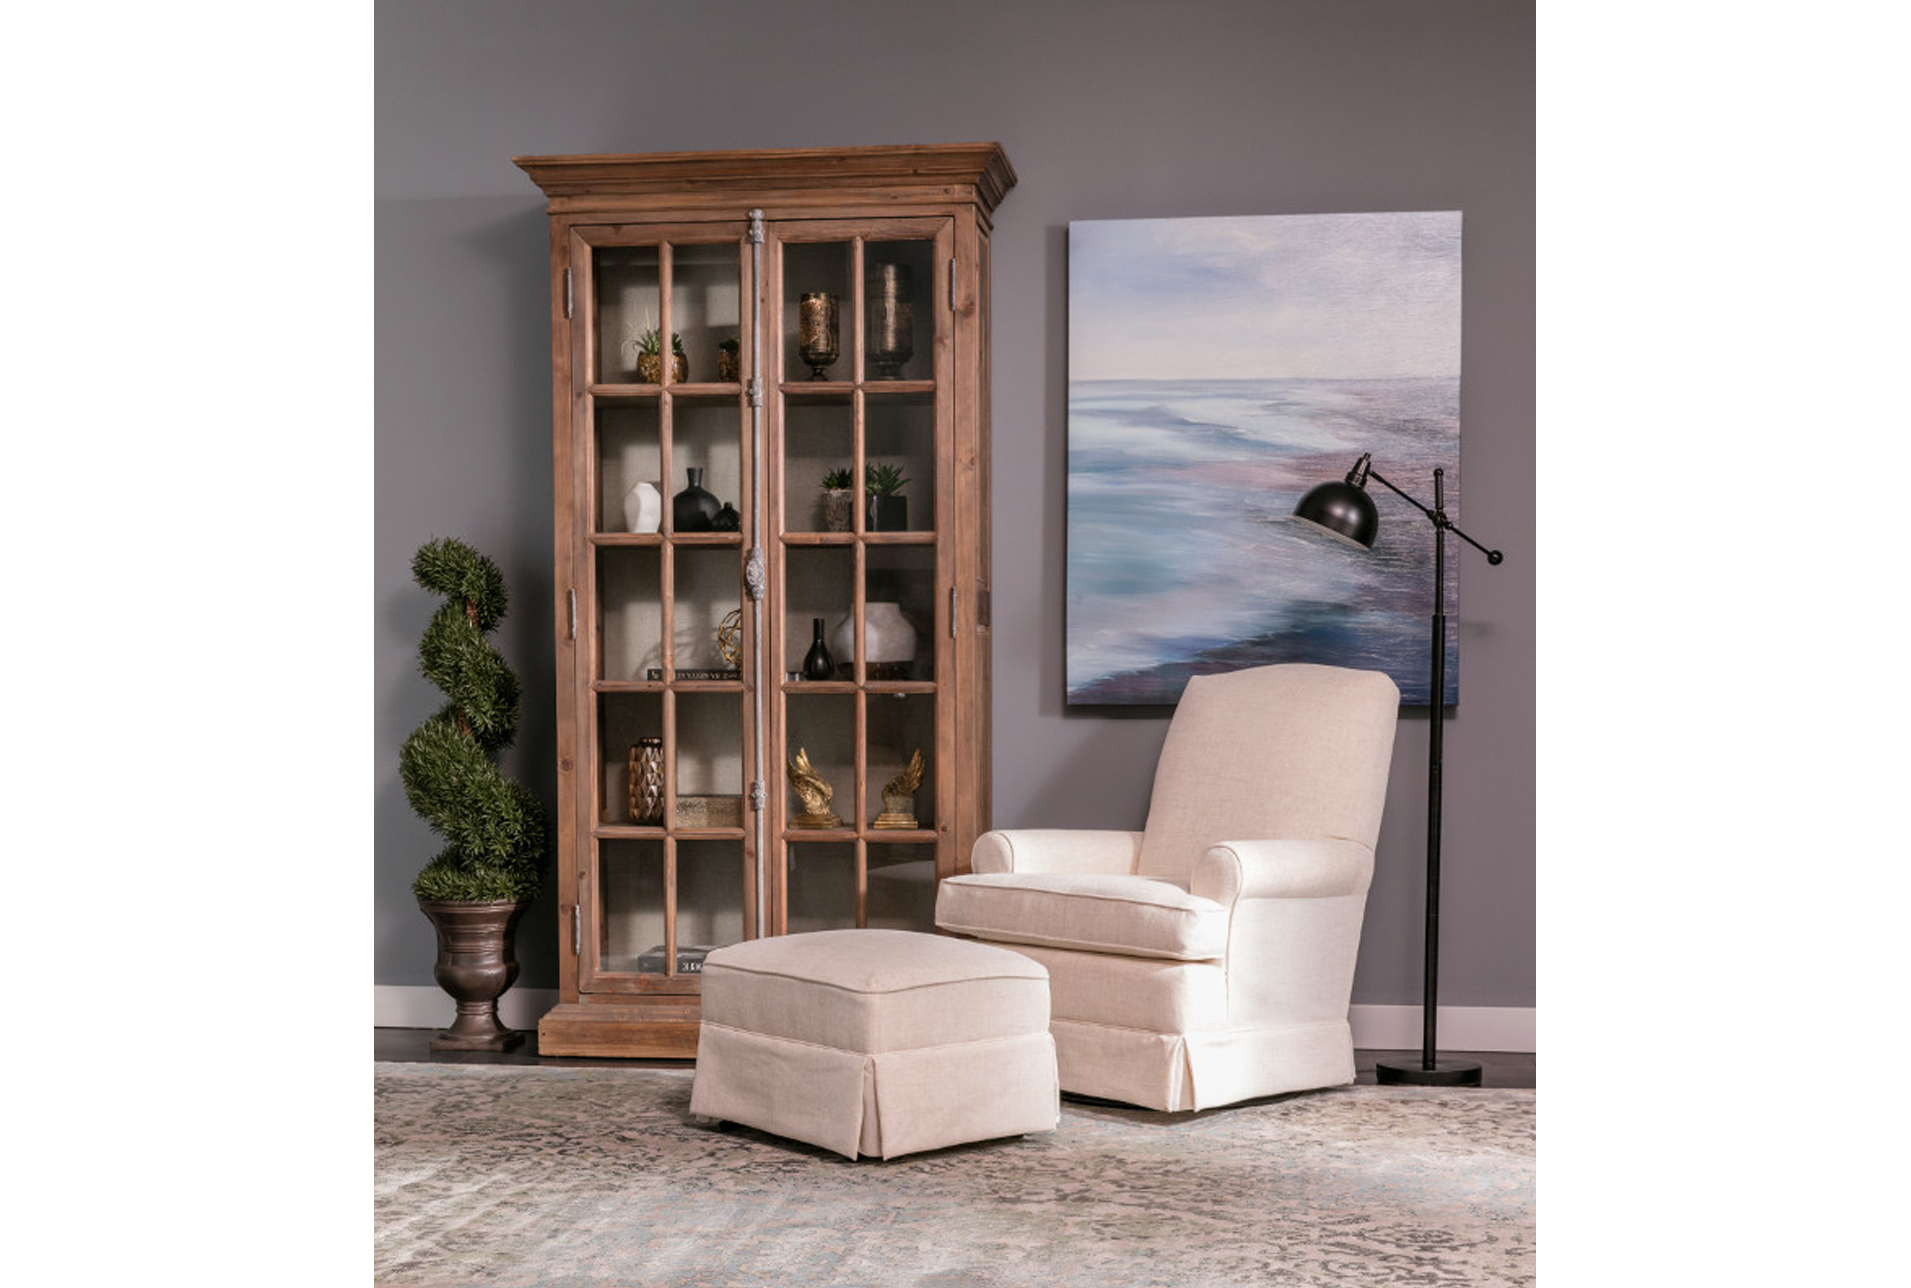 2019 Bailey Skirted Glider Ottoman Pertaining To Bailey Roll Arm Skirted Swivel Gliders (View 6 of 20)